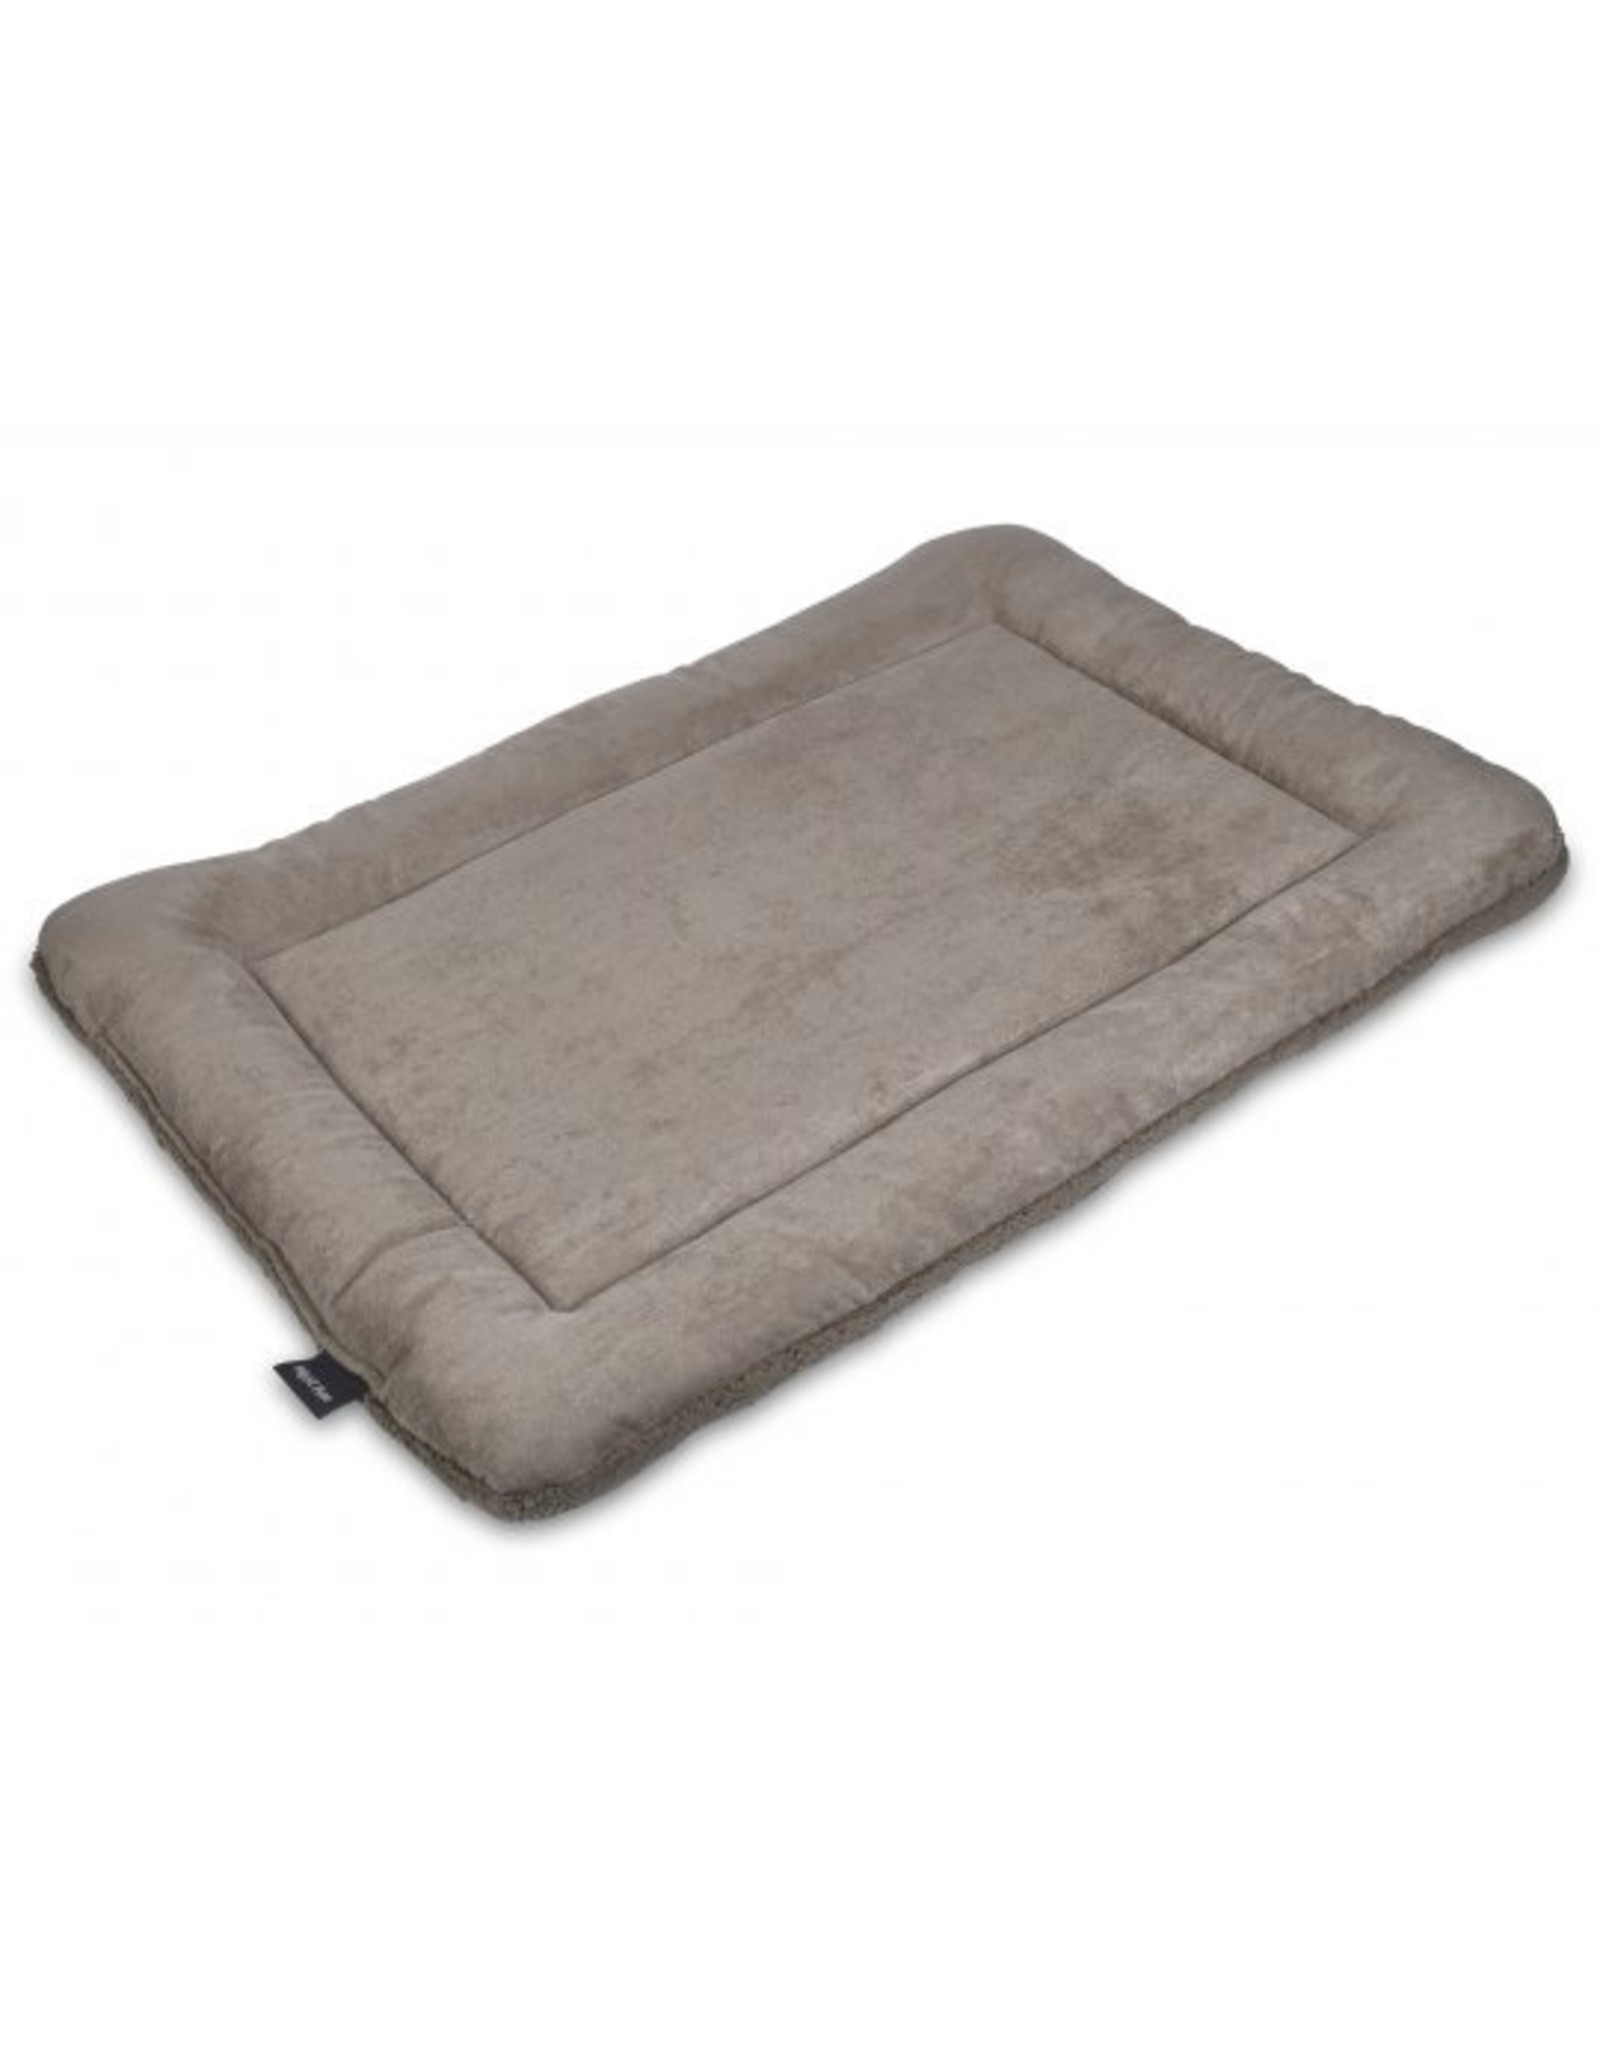 West Paw Designs Westpaw: Big Sky Nap Small Oatmeal